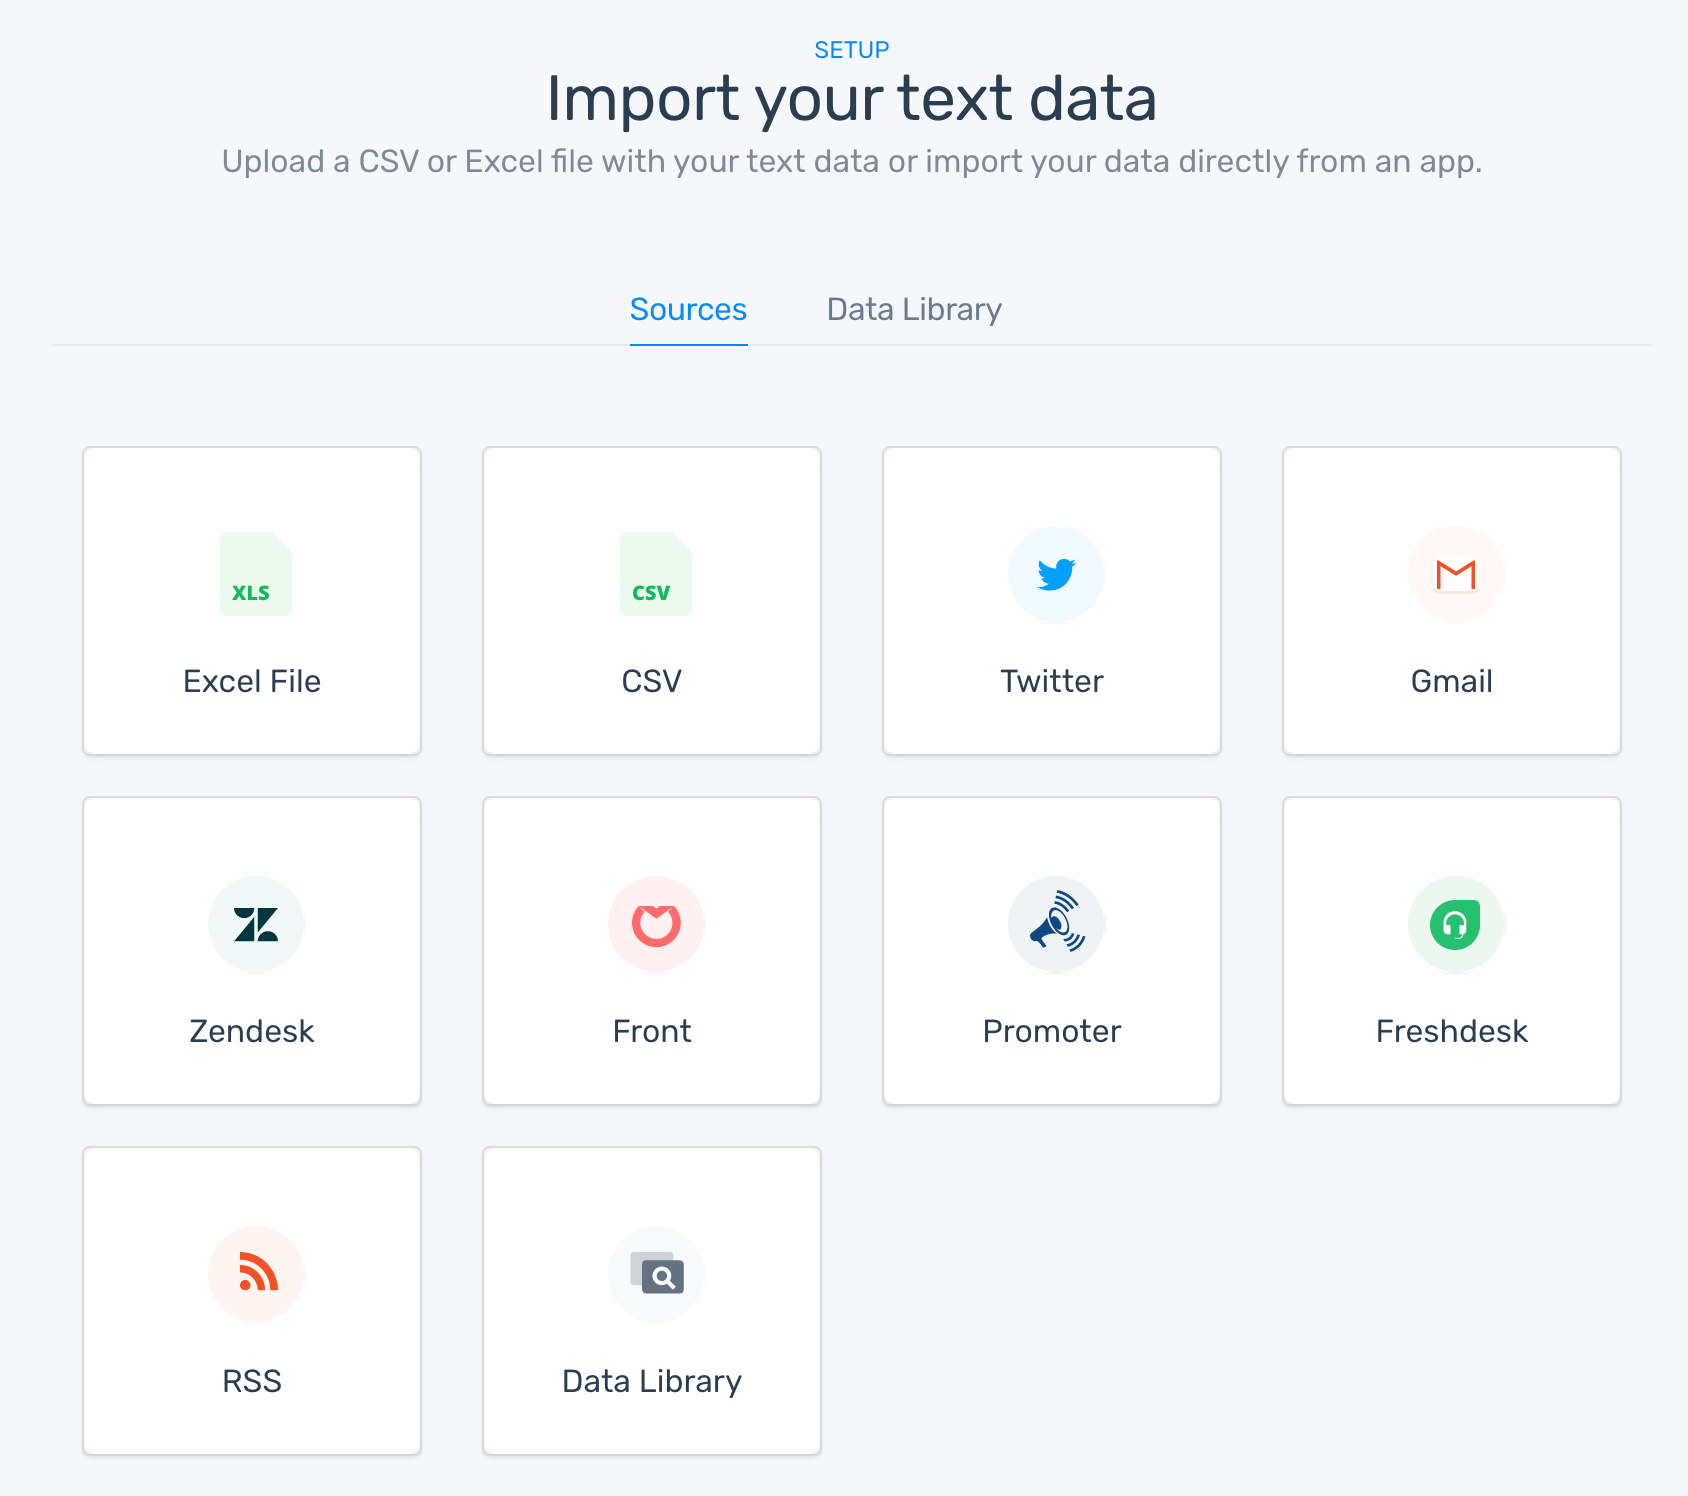 The choice to upload data from a variety of sources.